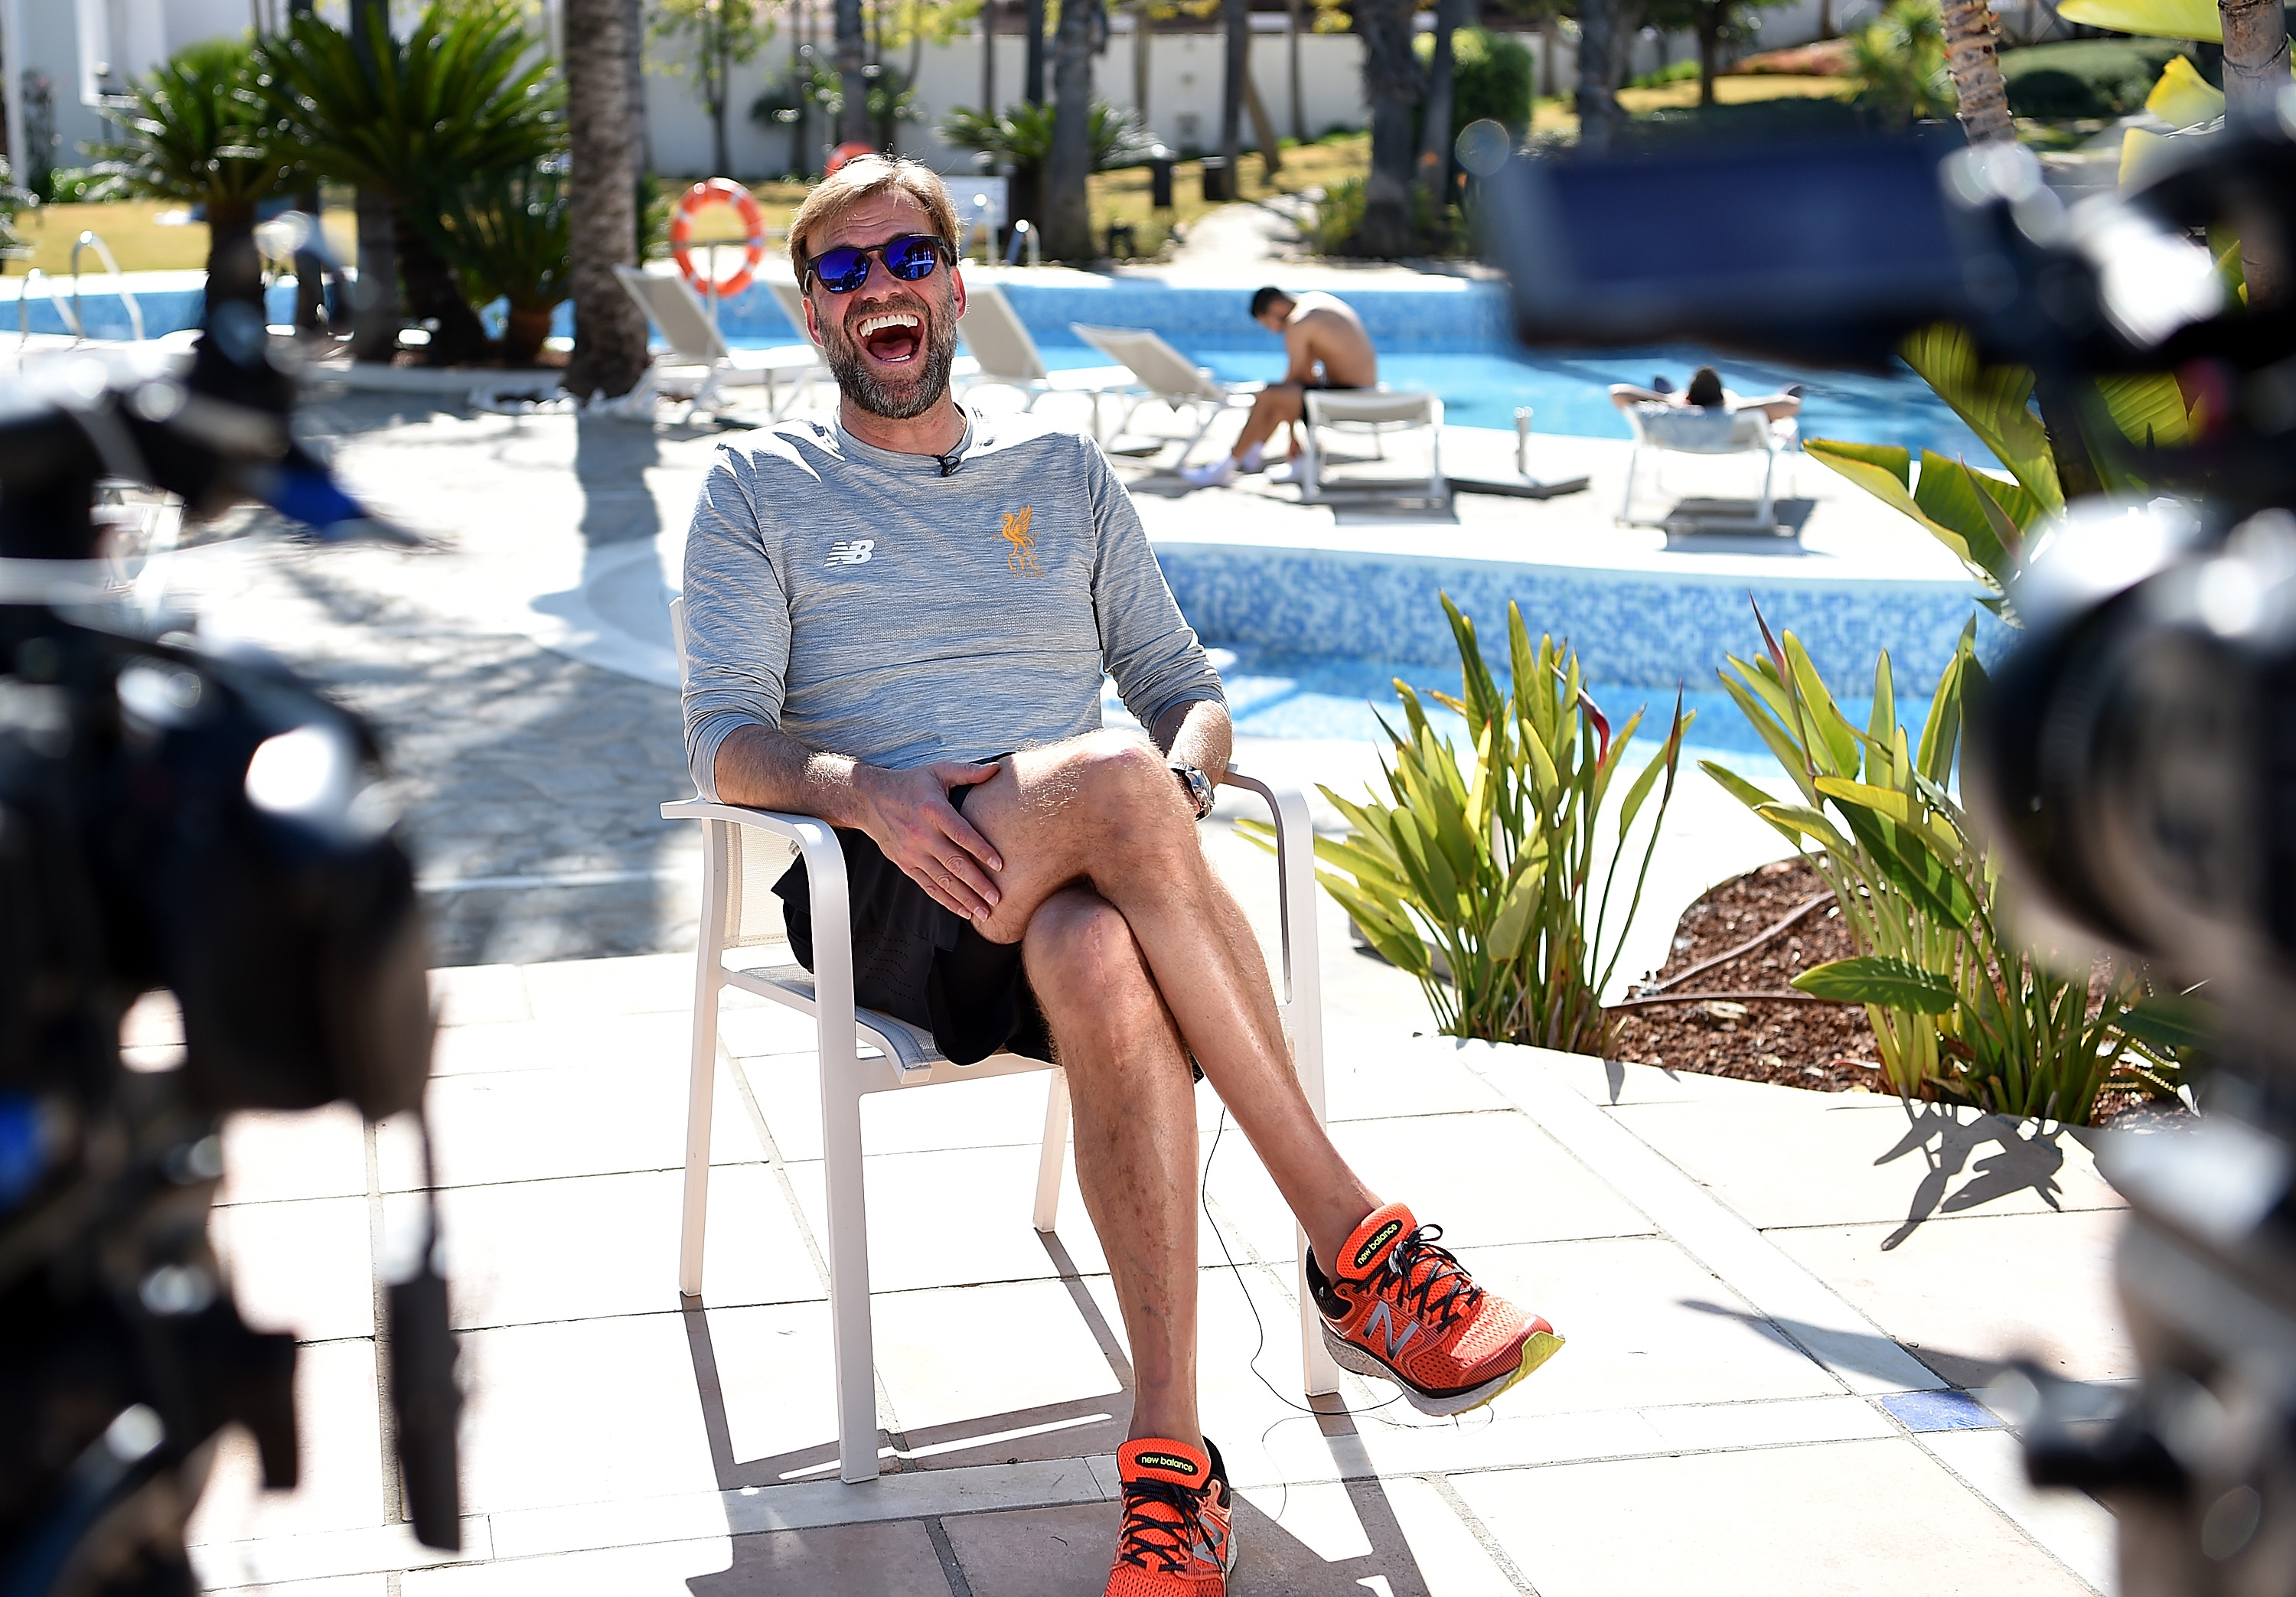 Liverpool Head to Marbella for Warm Weather Training Camp